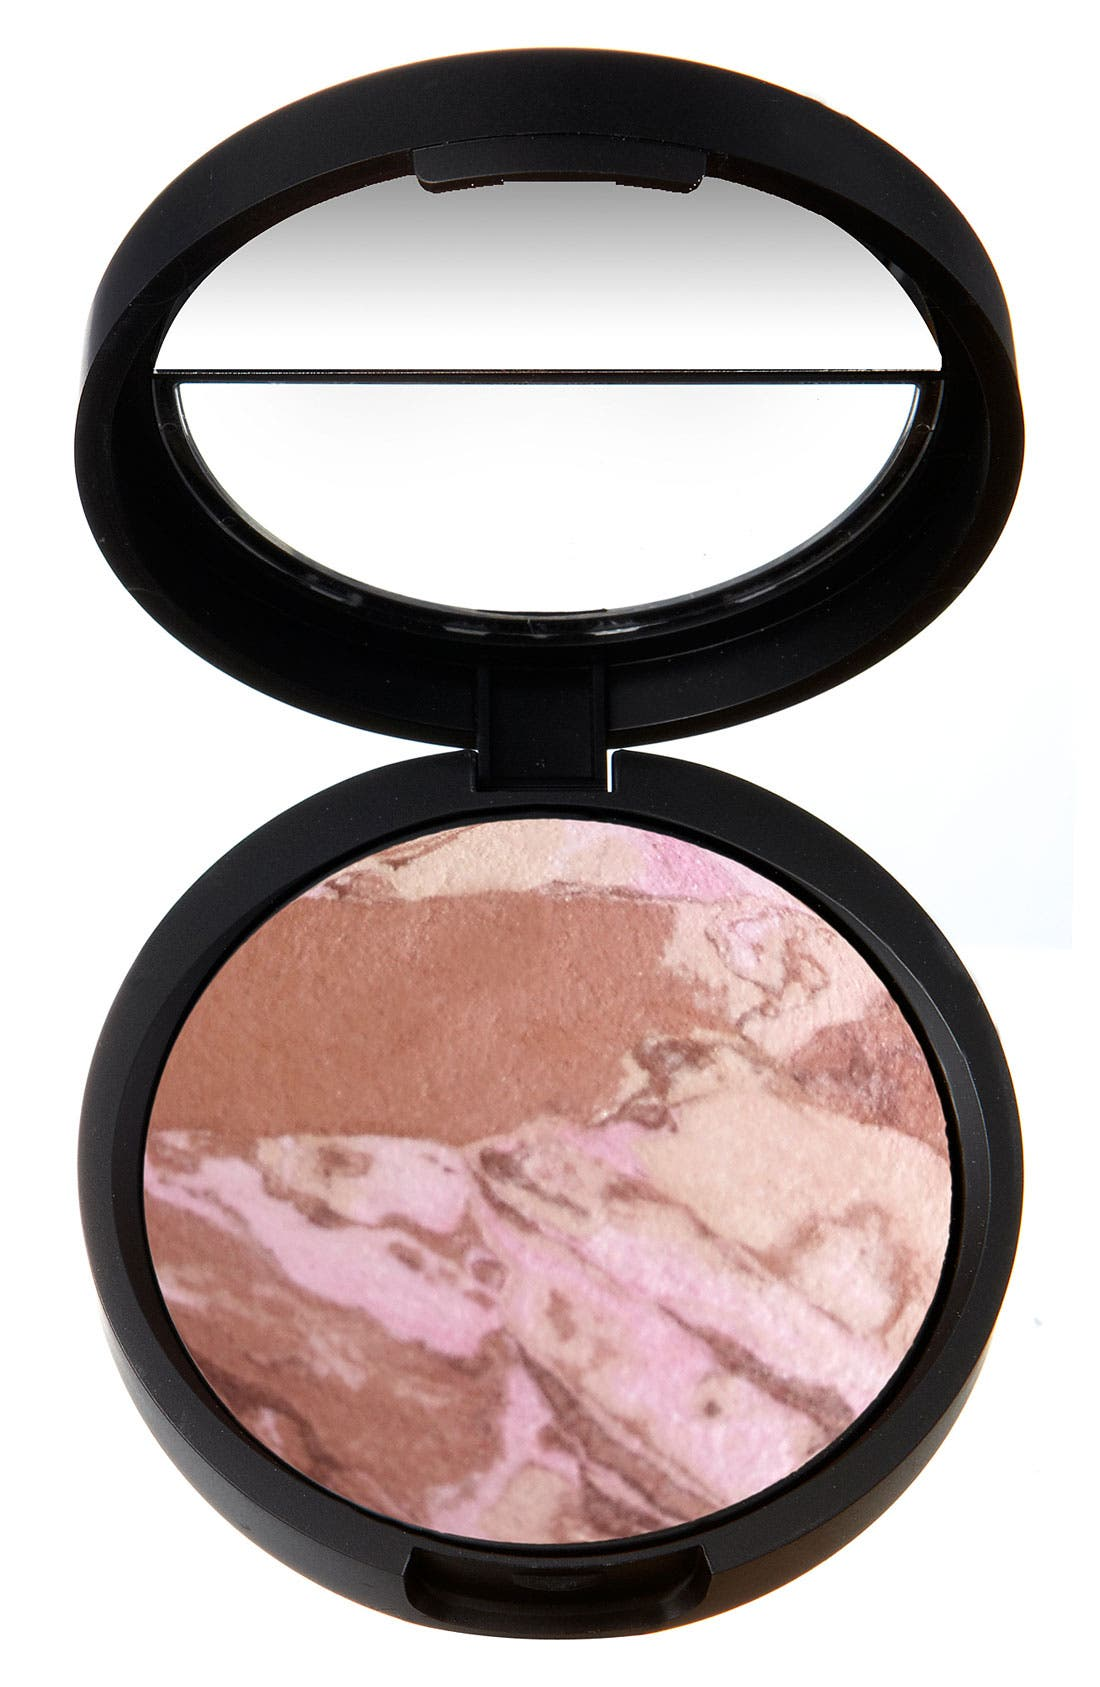 Laura Geller Beauty 'Bronze-n-Brighten' Baked Color Correcting Bronzer